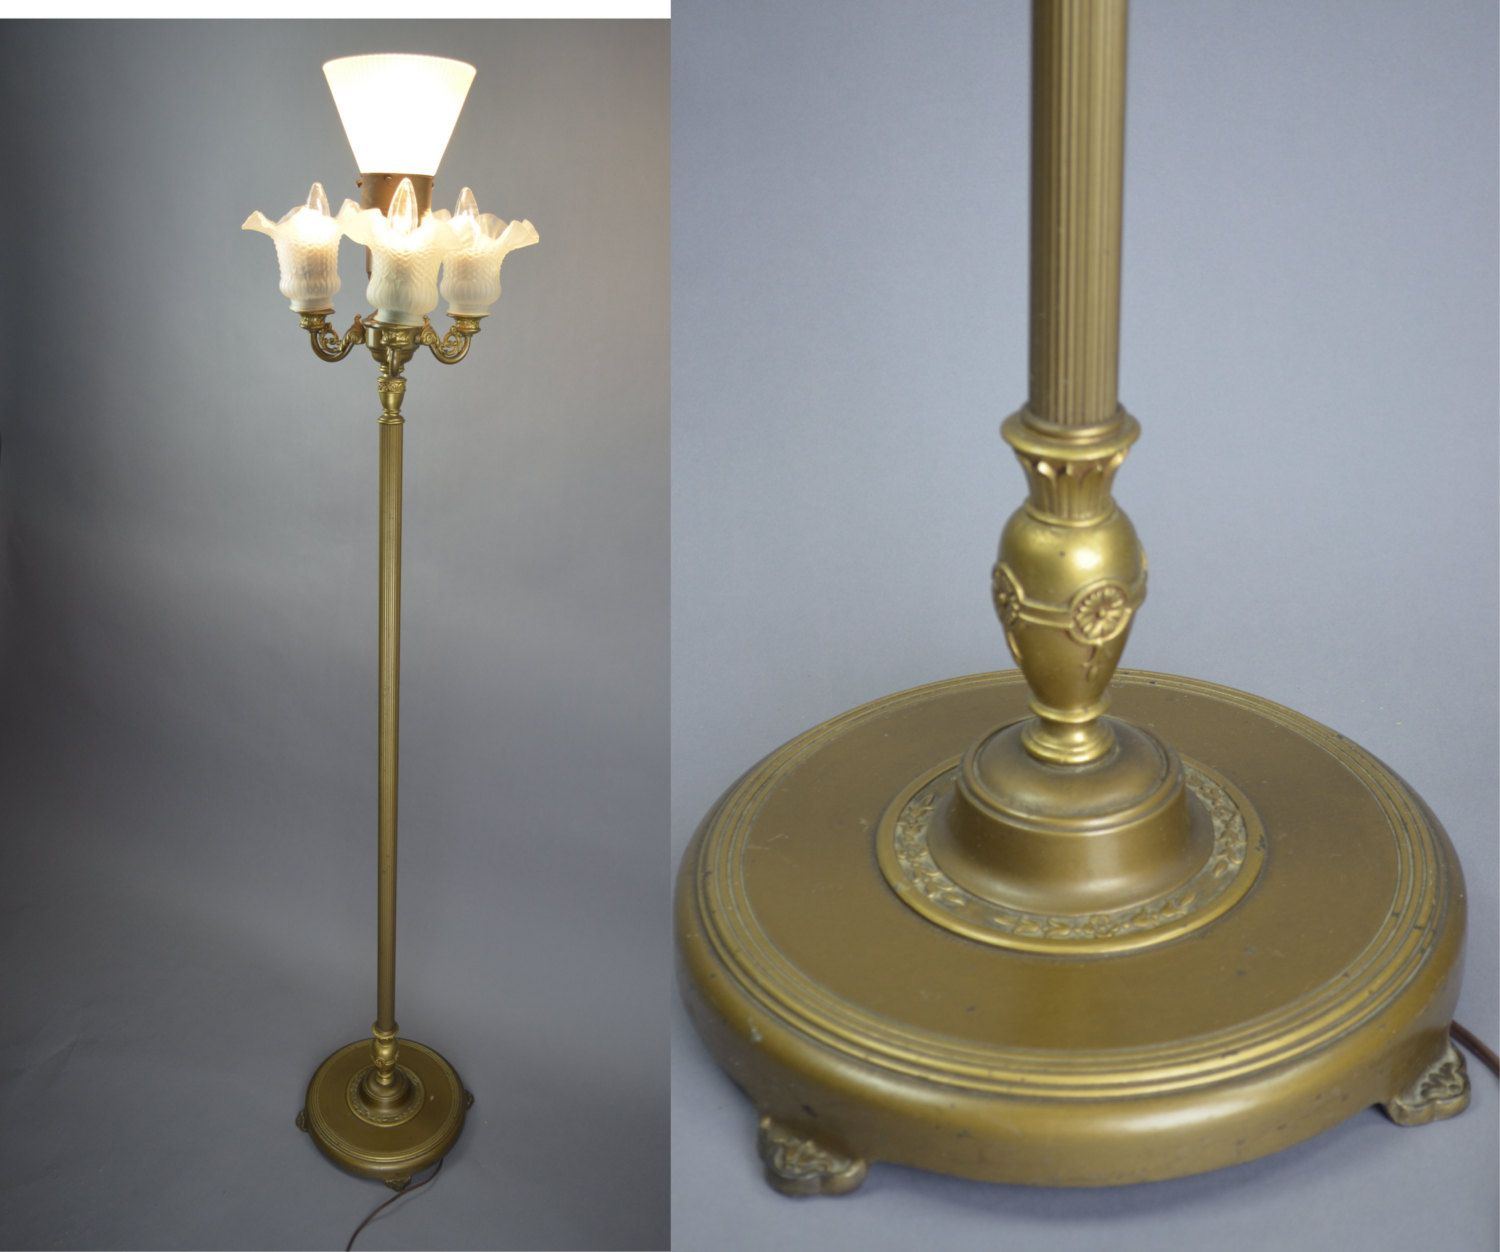 Vintage 1920 S Rembrandt Art Deco 4 Light Mogul Floor Lamp